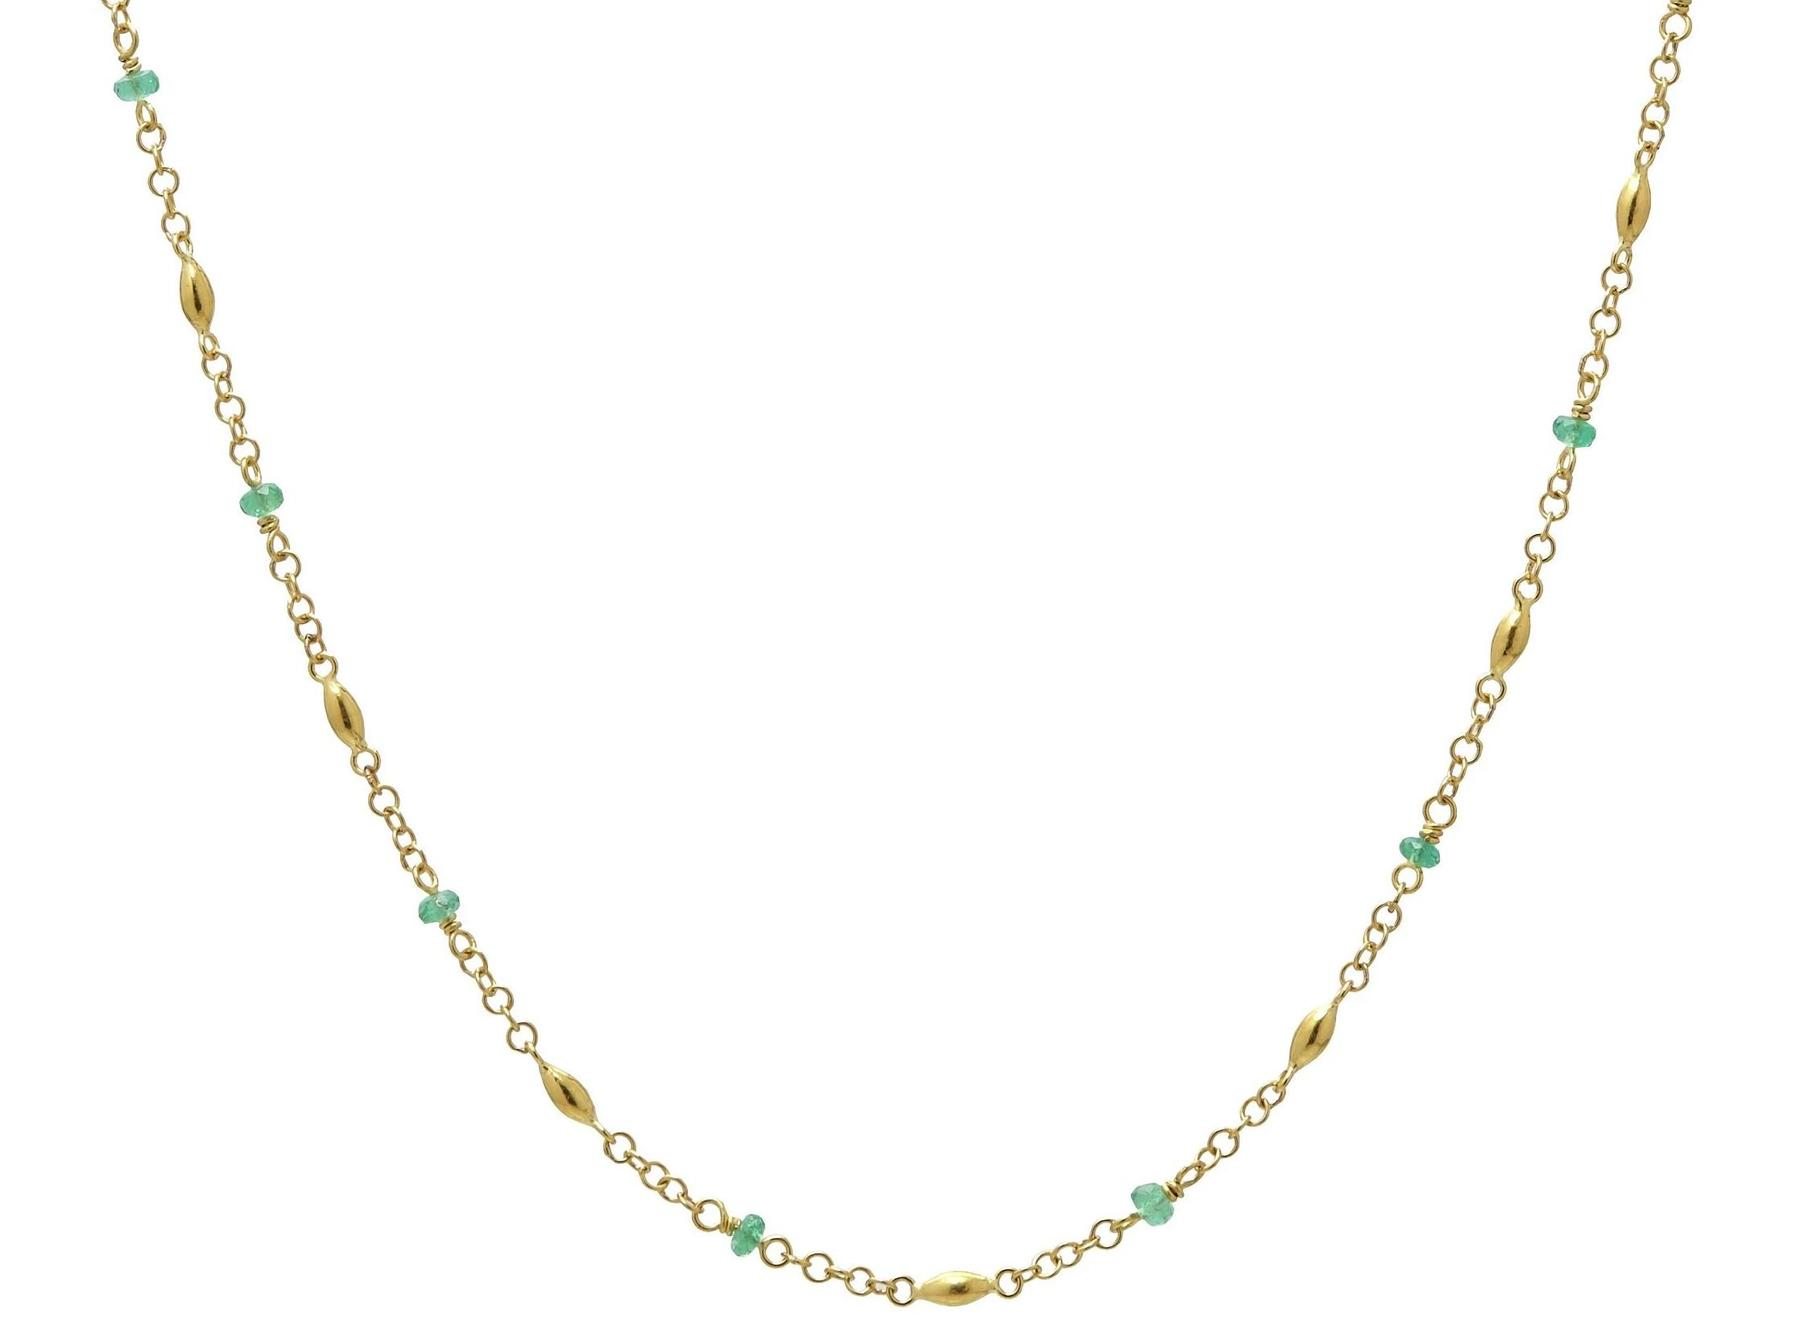 Gurhan 24K Yellow Gold 1.79cts  Emeralds Gold Necklace with Stones CHN-OLS-12EMB-18